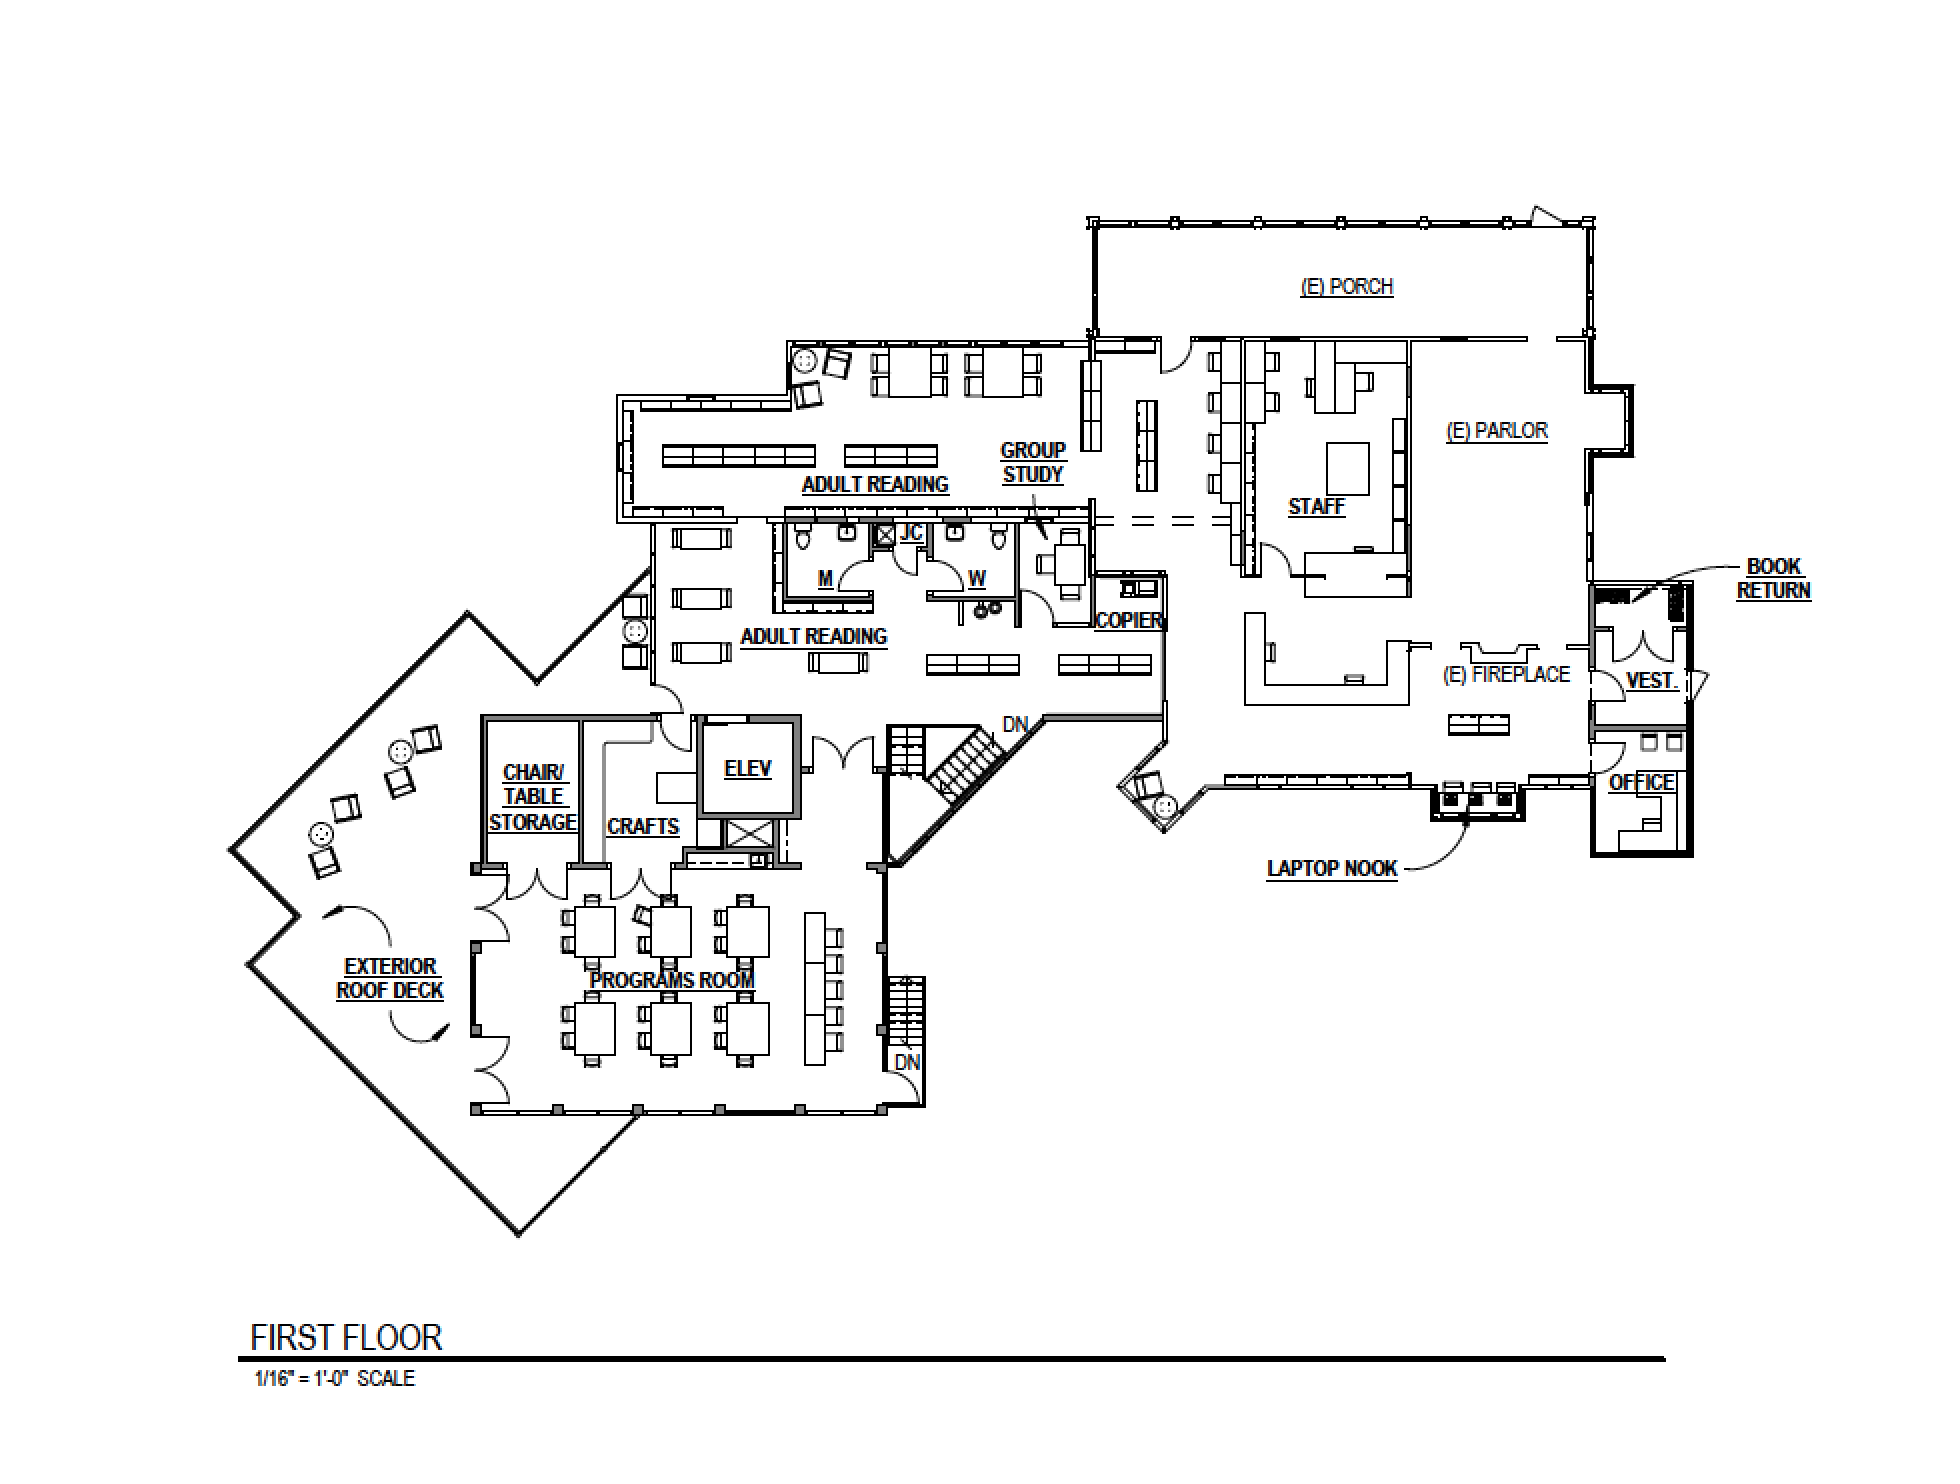 First Floor Layout.png